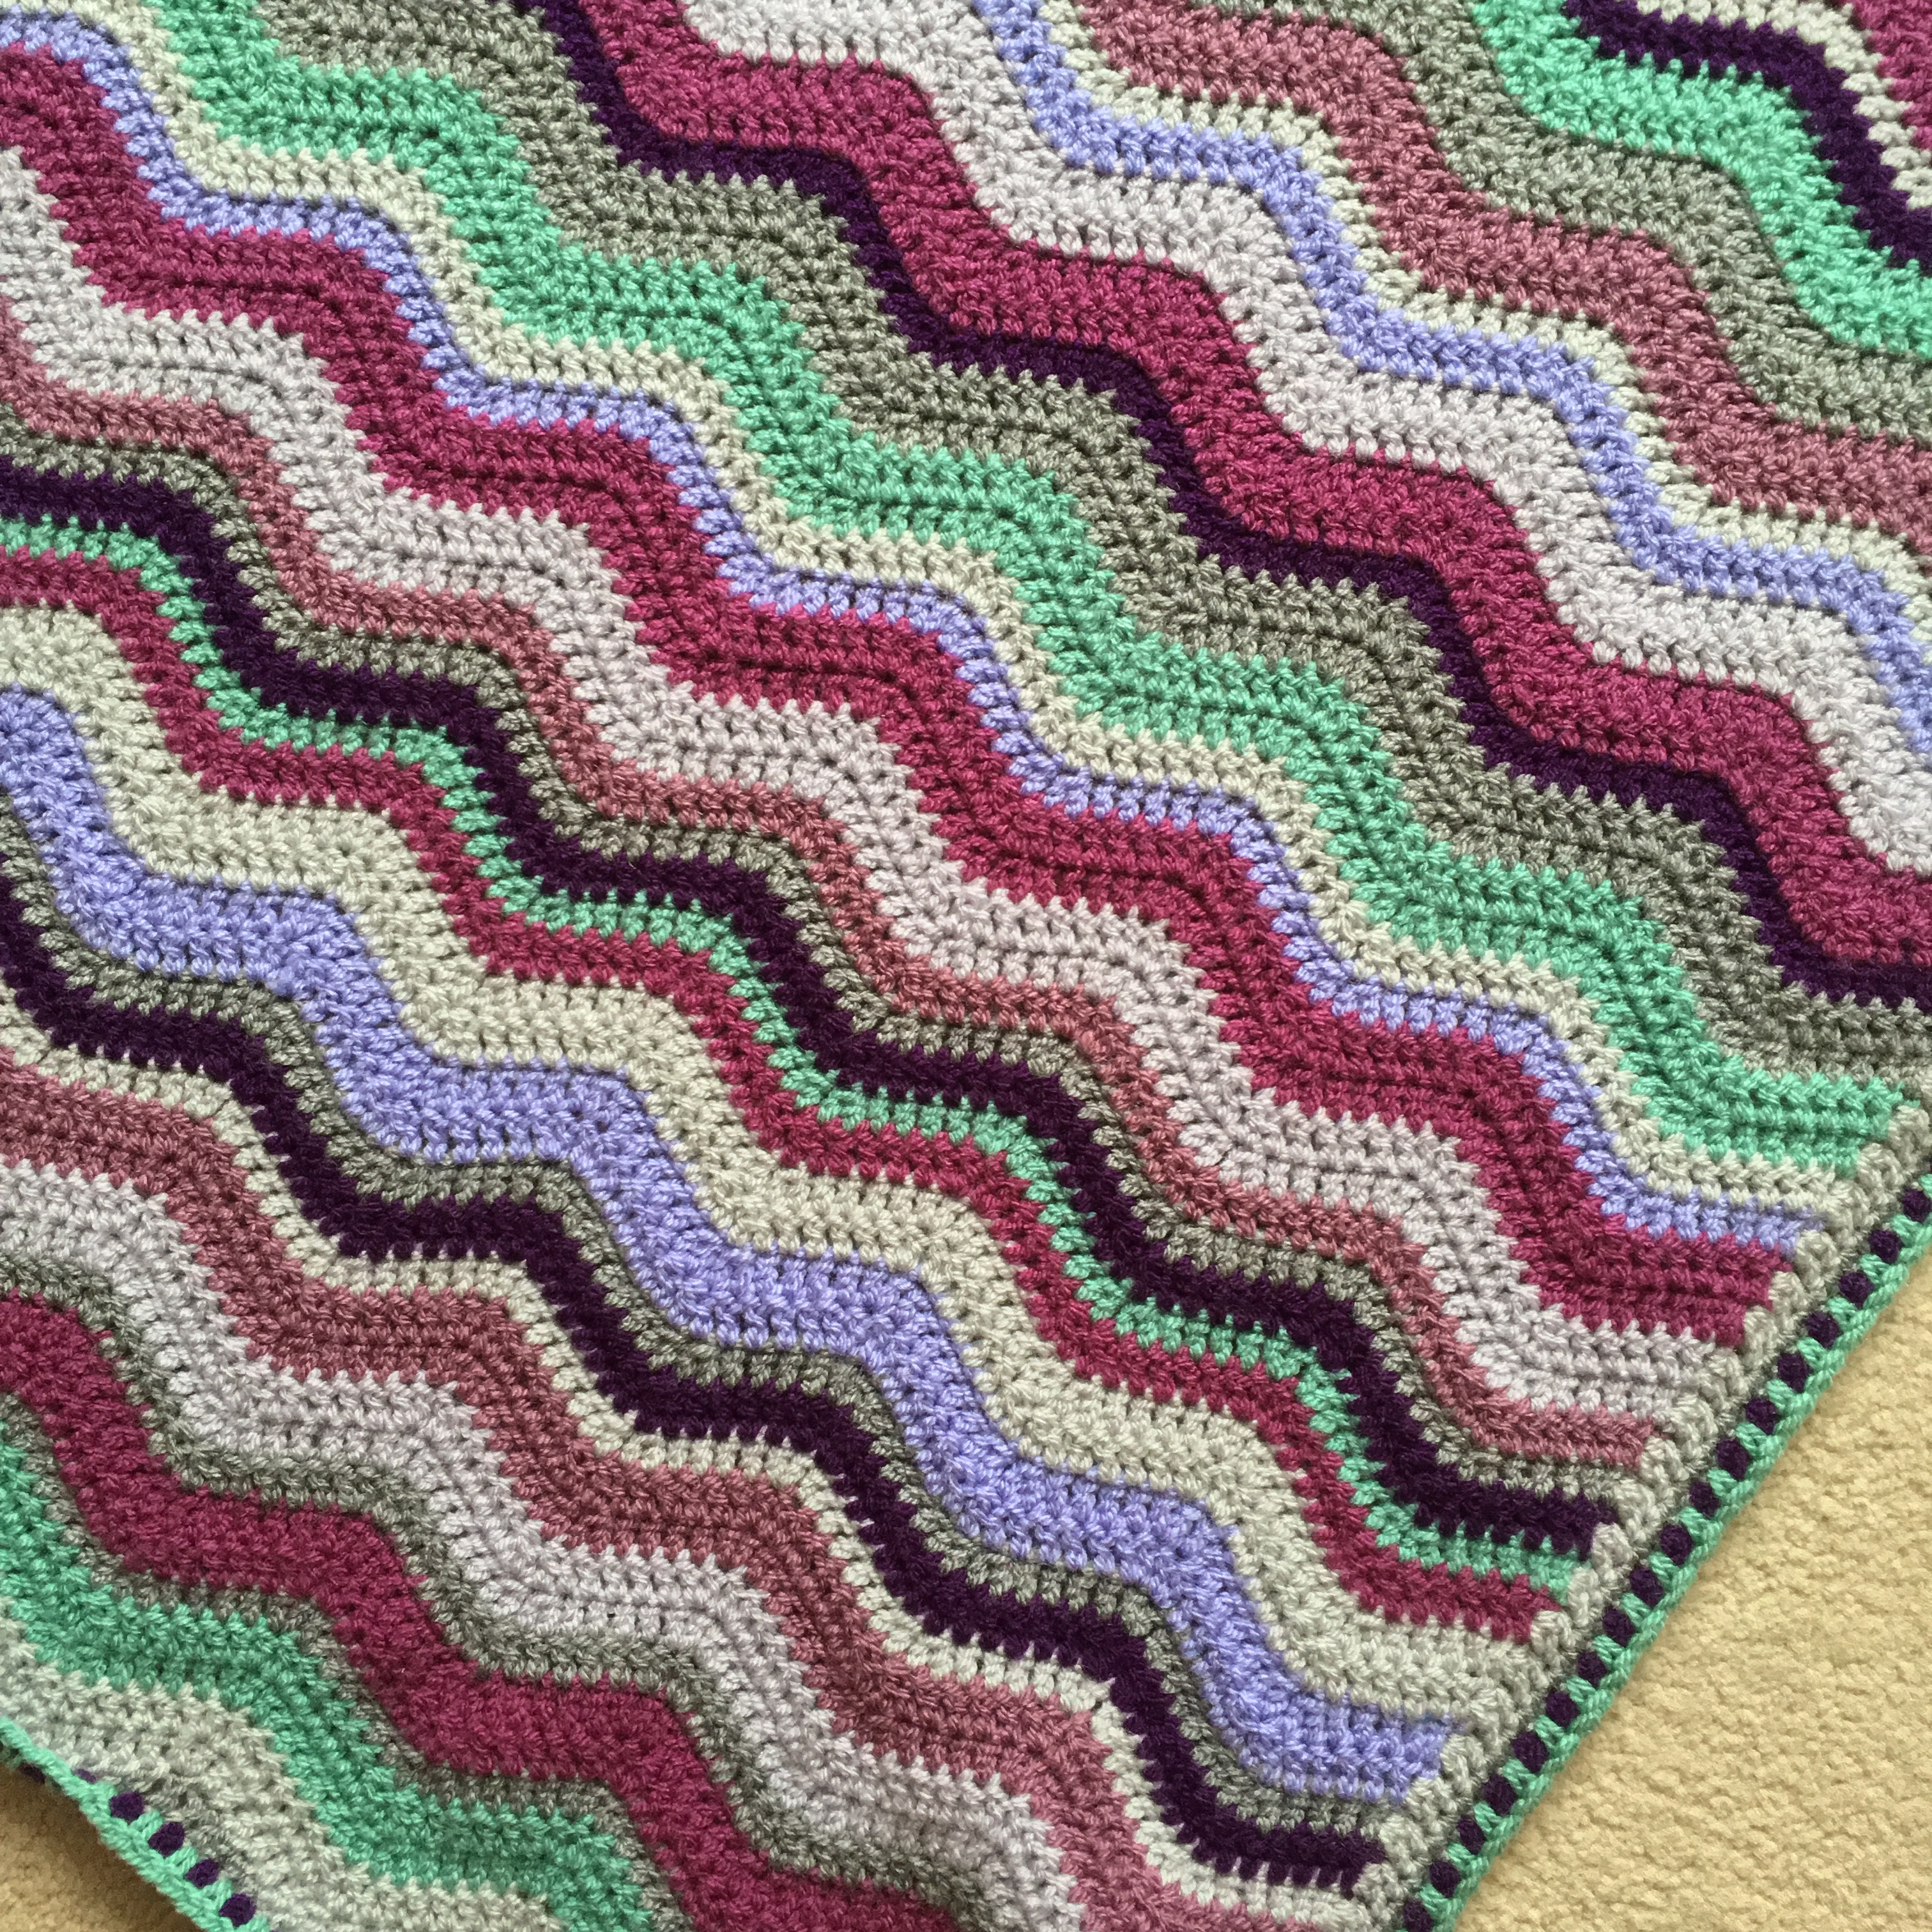 The blackberry ripple blanket finished the little room of rachell see my zesty raspberry ripple blanket post for info about the double crochet spike stitch edging bankloansurffo Images